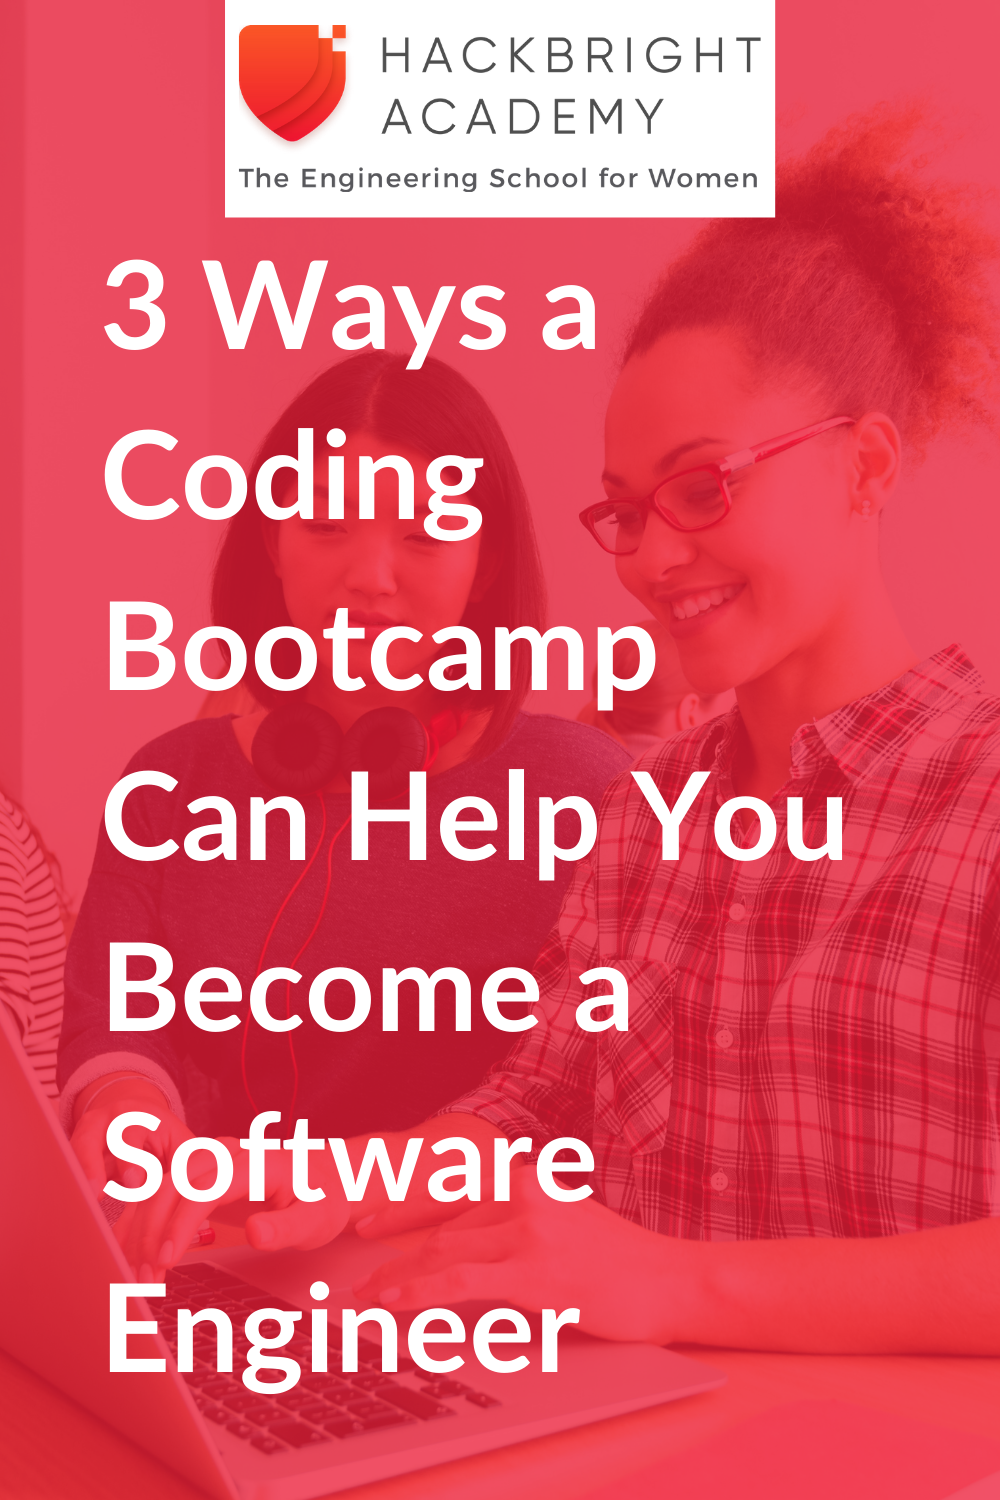 3 Ways a Coding Bootcamp Can Help You Become a Software Engineer